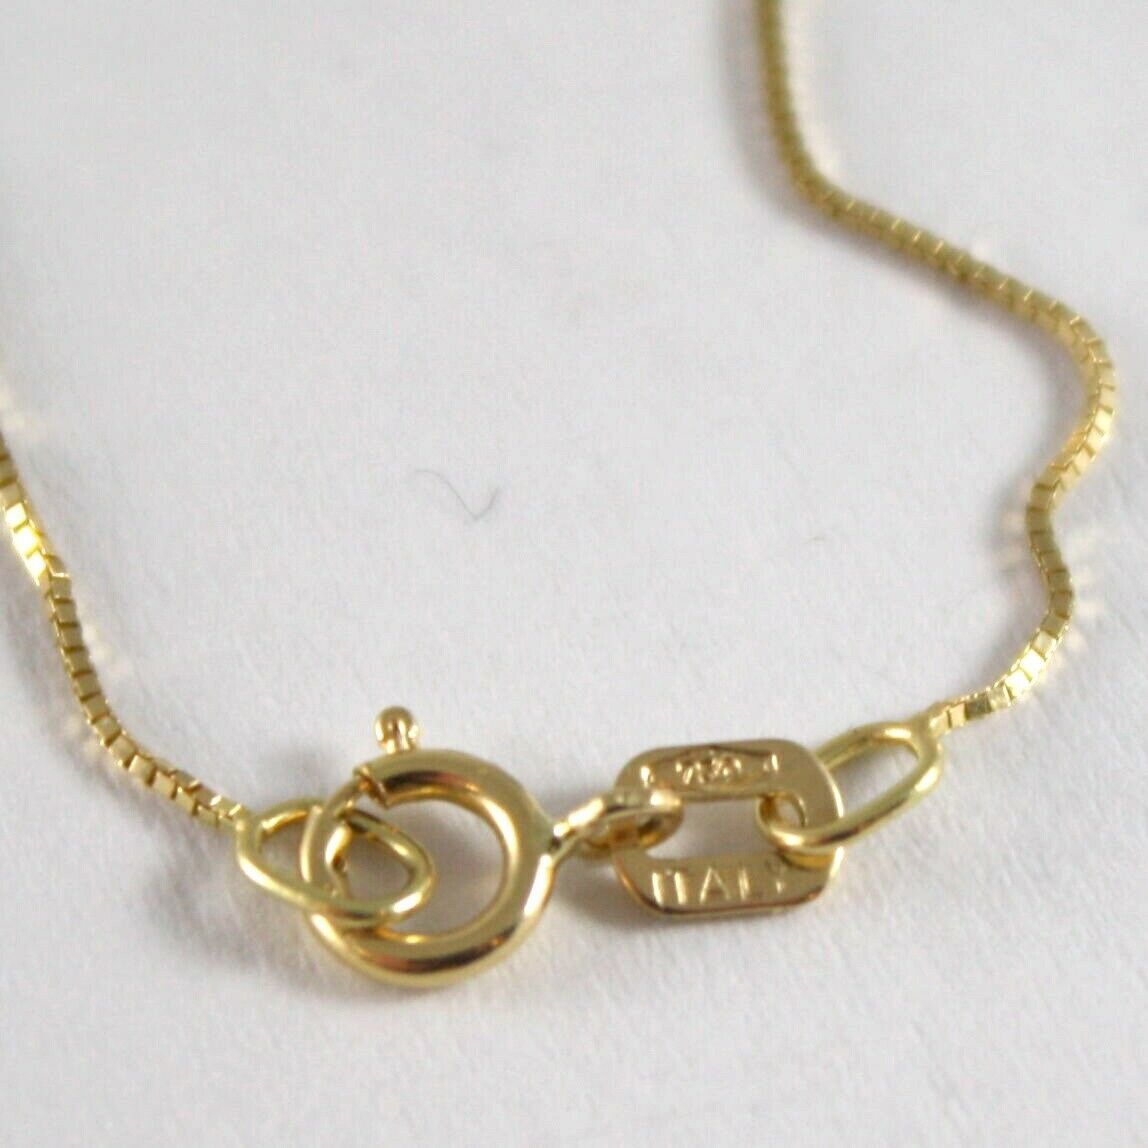 18K YELLOW GOLD CHAIN NECKLACE 0.5 mm MINI VENETIAN LINK 19.68 IN. MADE IN ITALY